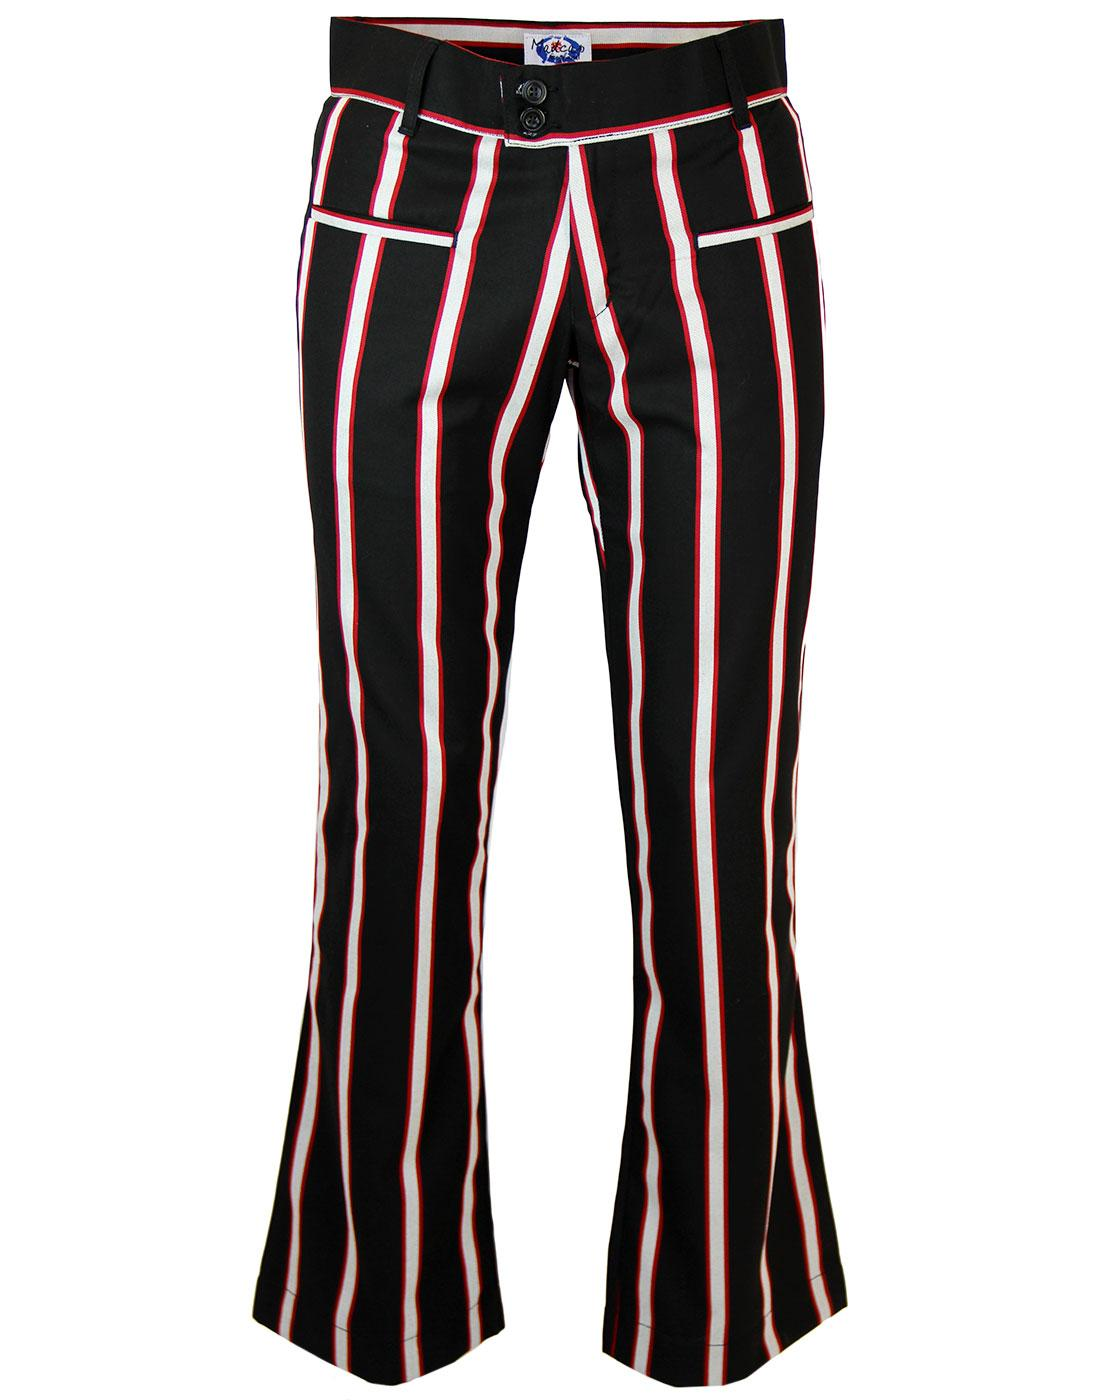 MADCAP ENGLAND MOD BRIAN JONES SUIT TROUSERS